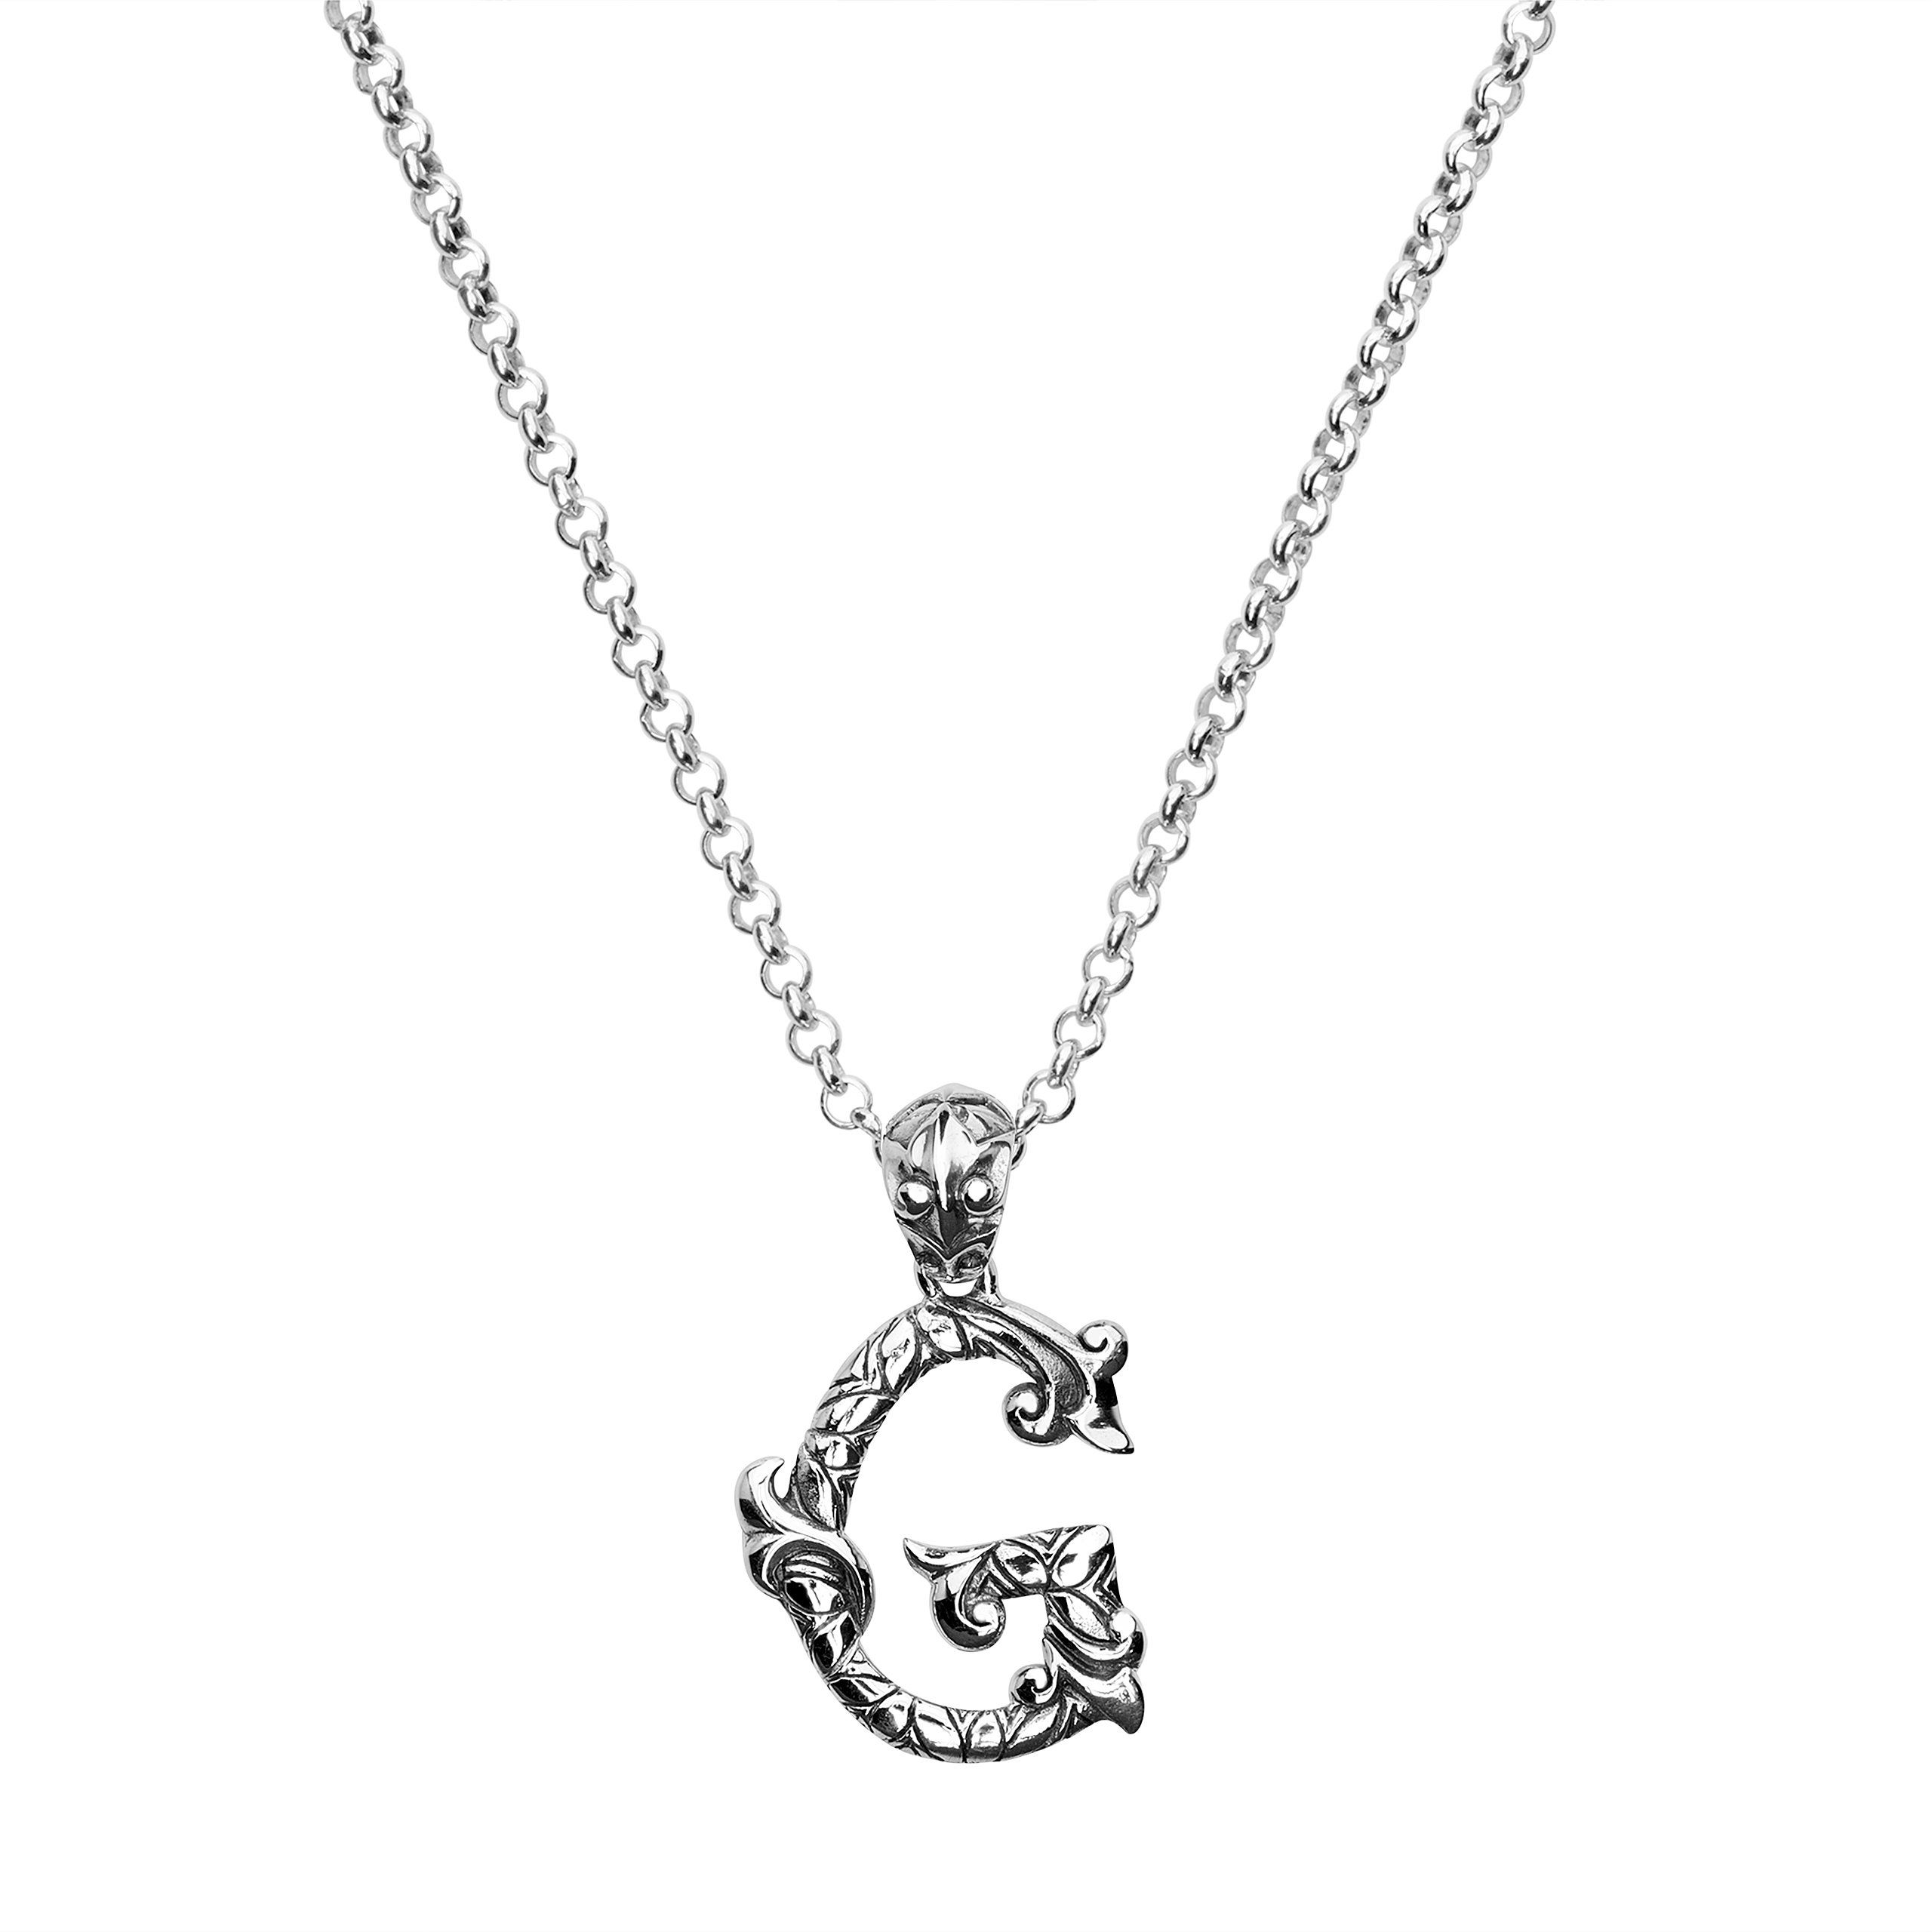 jewelry gold designs g necklace gallery metallic lyst in diamond disc letter pendant kc